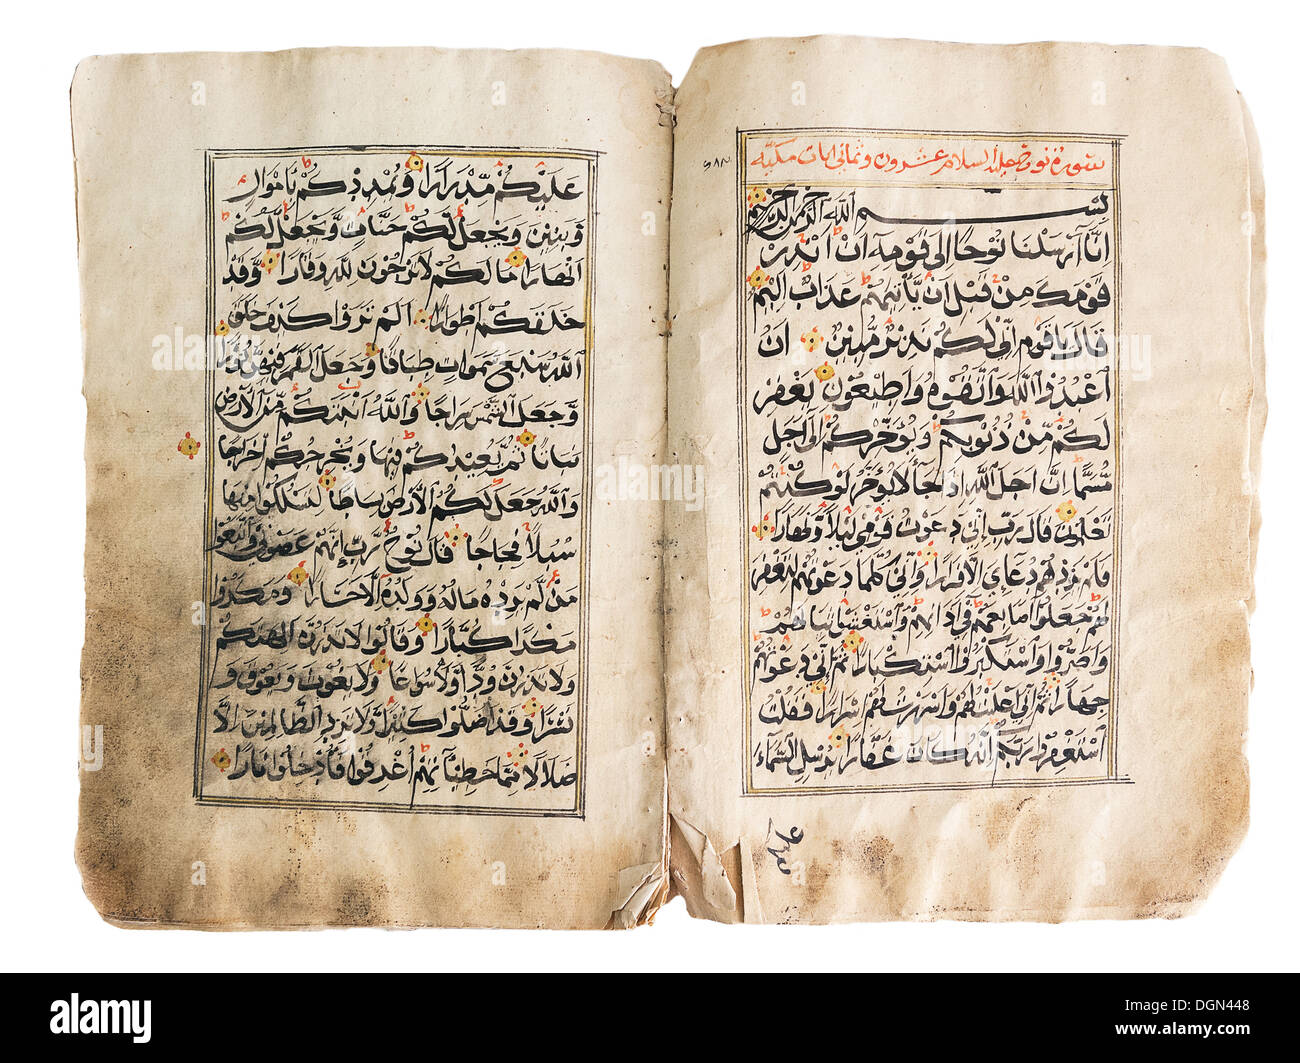 Old quran book over white background - Stock Image